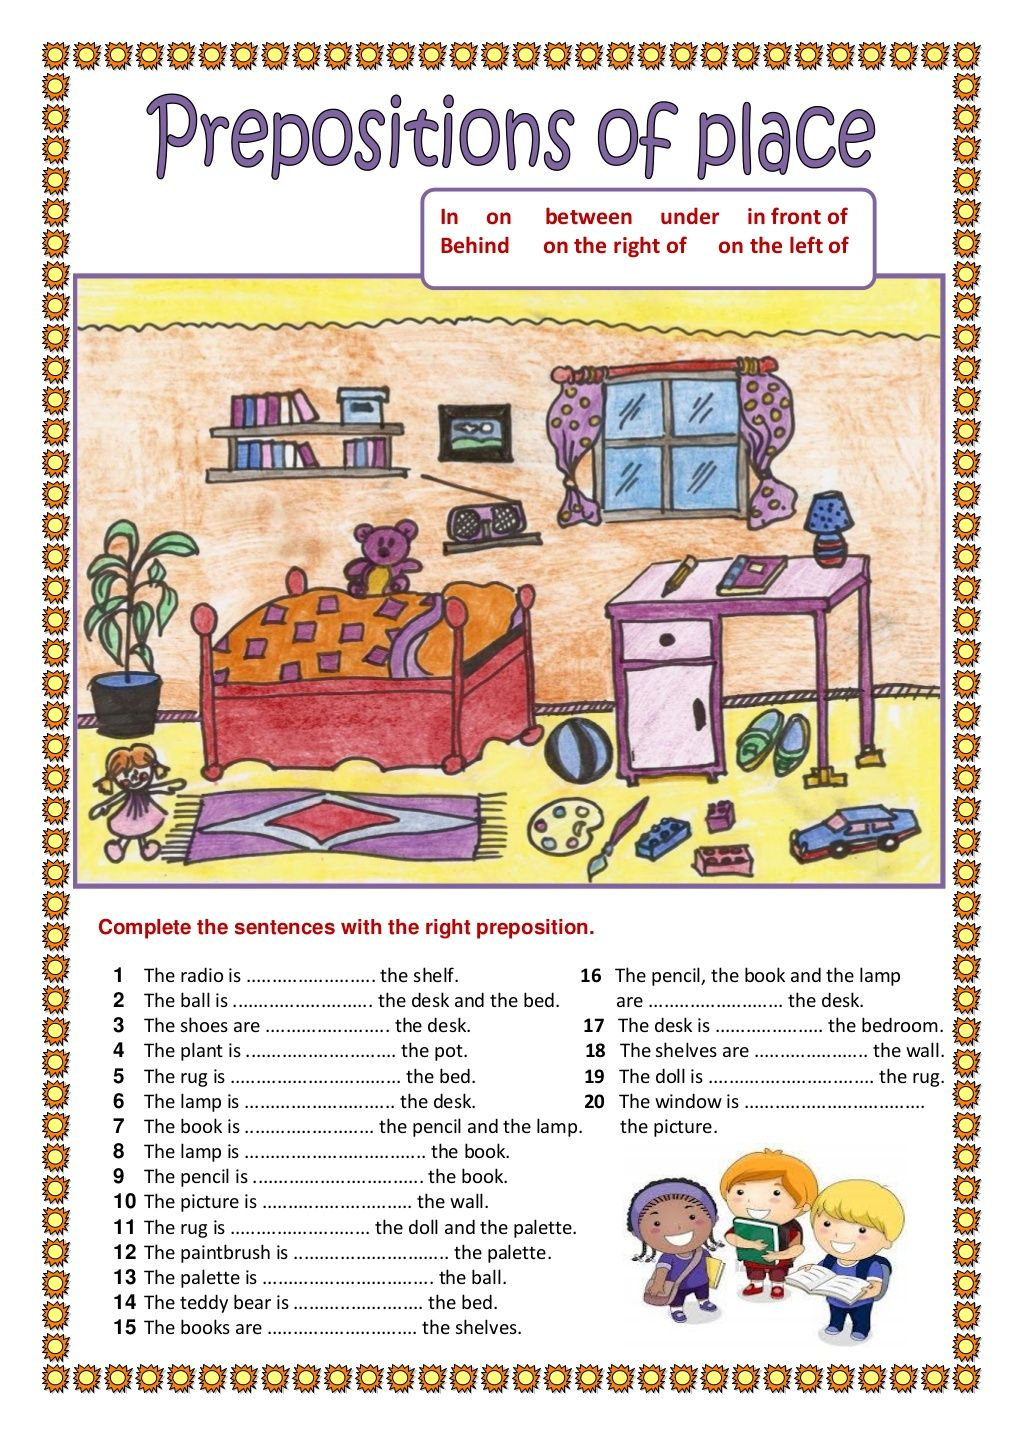 Worksheets Preposition Worksheet prepositions of place 2 by maryeugenne222 via slideshare 358 free esl worksheets